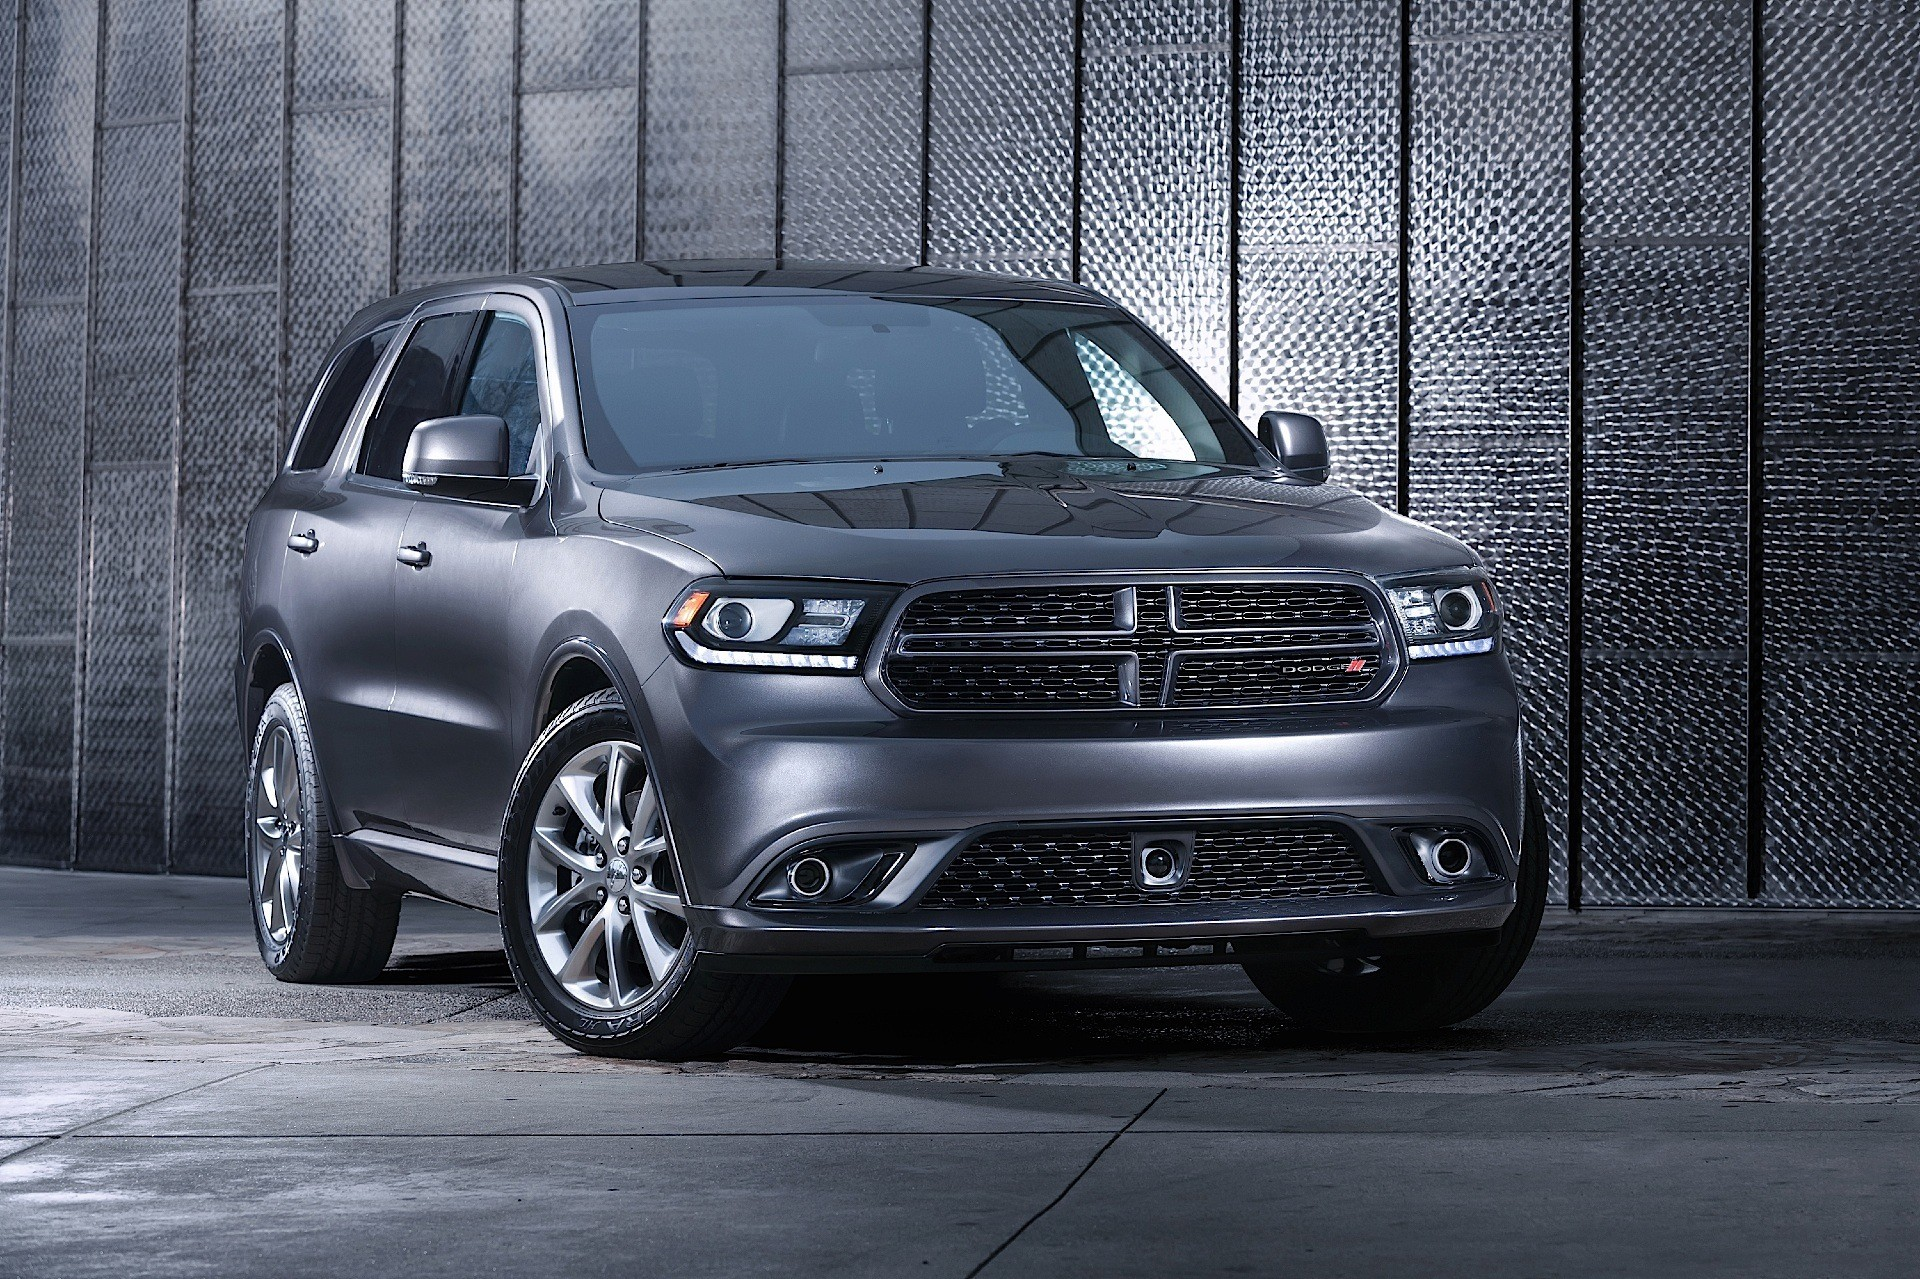 ram truck to compete with raptor with Dodge Durango Hellcat Is A Possibility The Srt Is Close To Market Launch 114755 on 370194 59 Ford Edsel Value together with 2018 Dodge Ram Specs And Release Date additionally The New Ranger Needs To Have A Raptor Version besides Ford F150 Atlas Pickup Concept Debut At The 2013 Naias likewise 2017 Ford Raptor Hot Wheels.